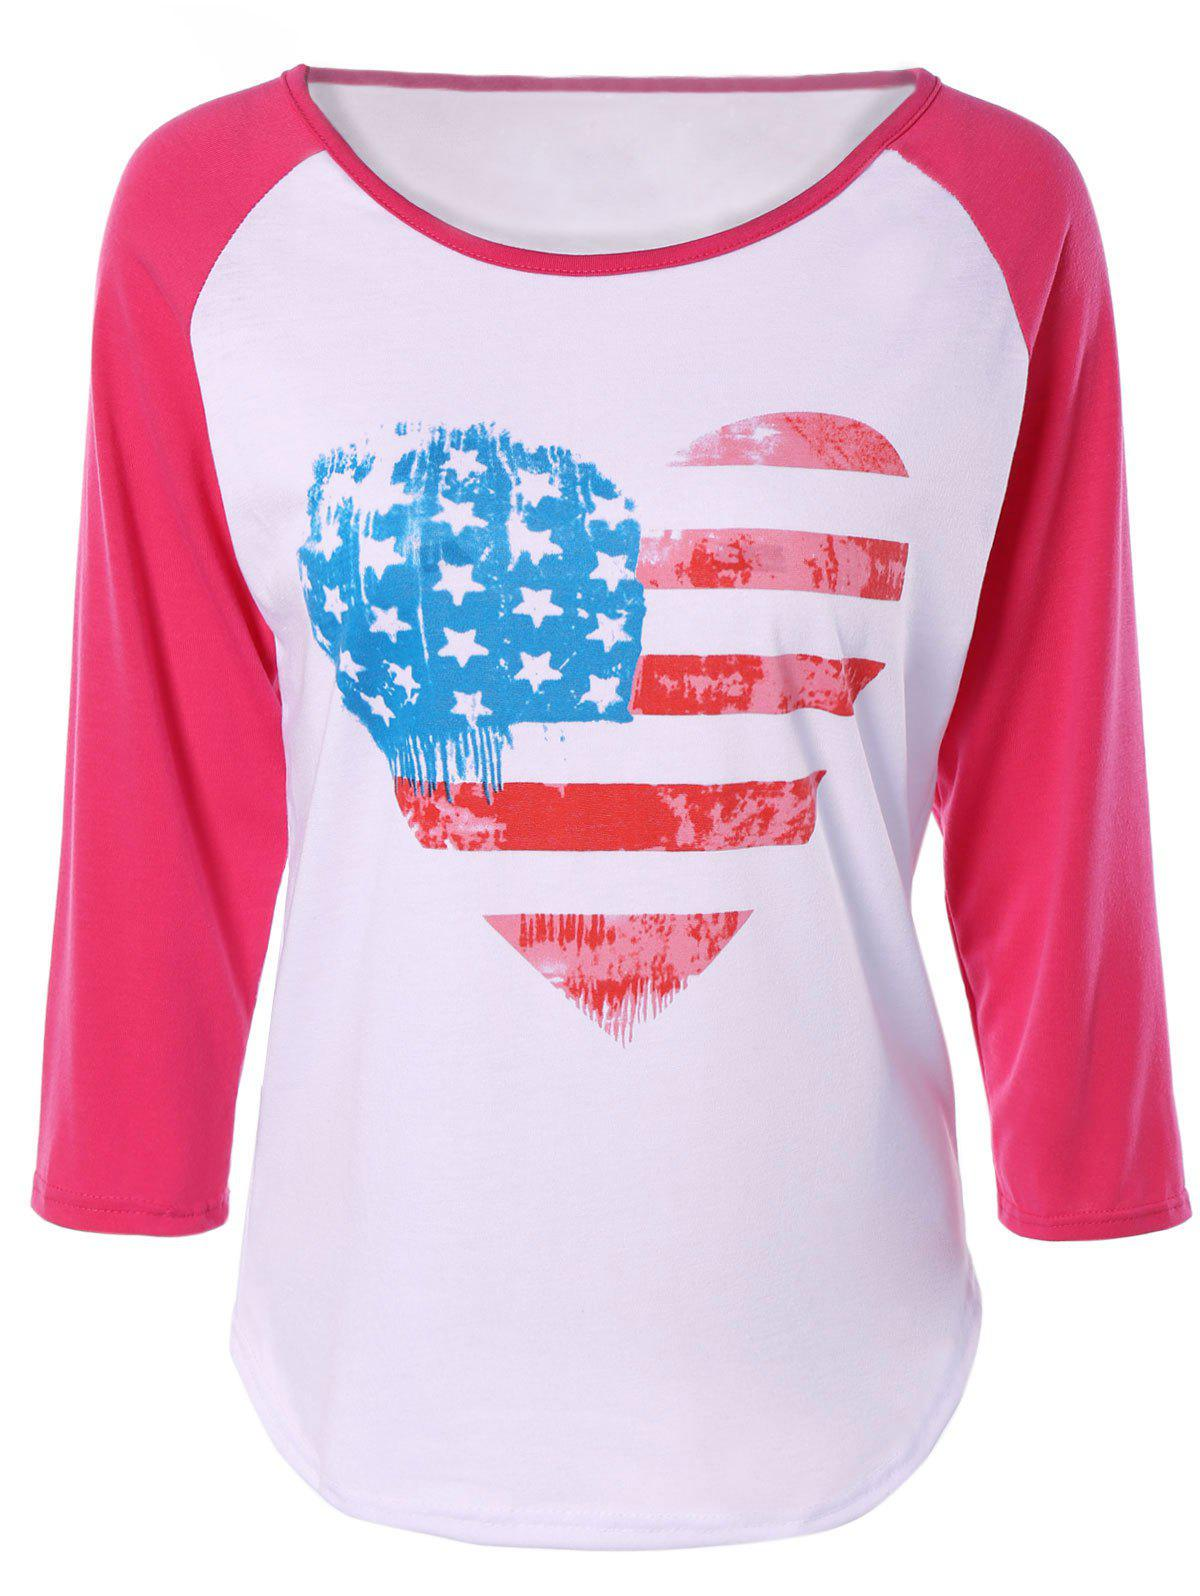 Heart Print Raglan Sleeve T-Shirt - PINK/WHITE XL